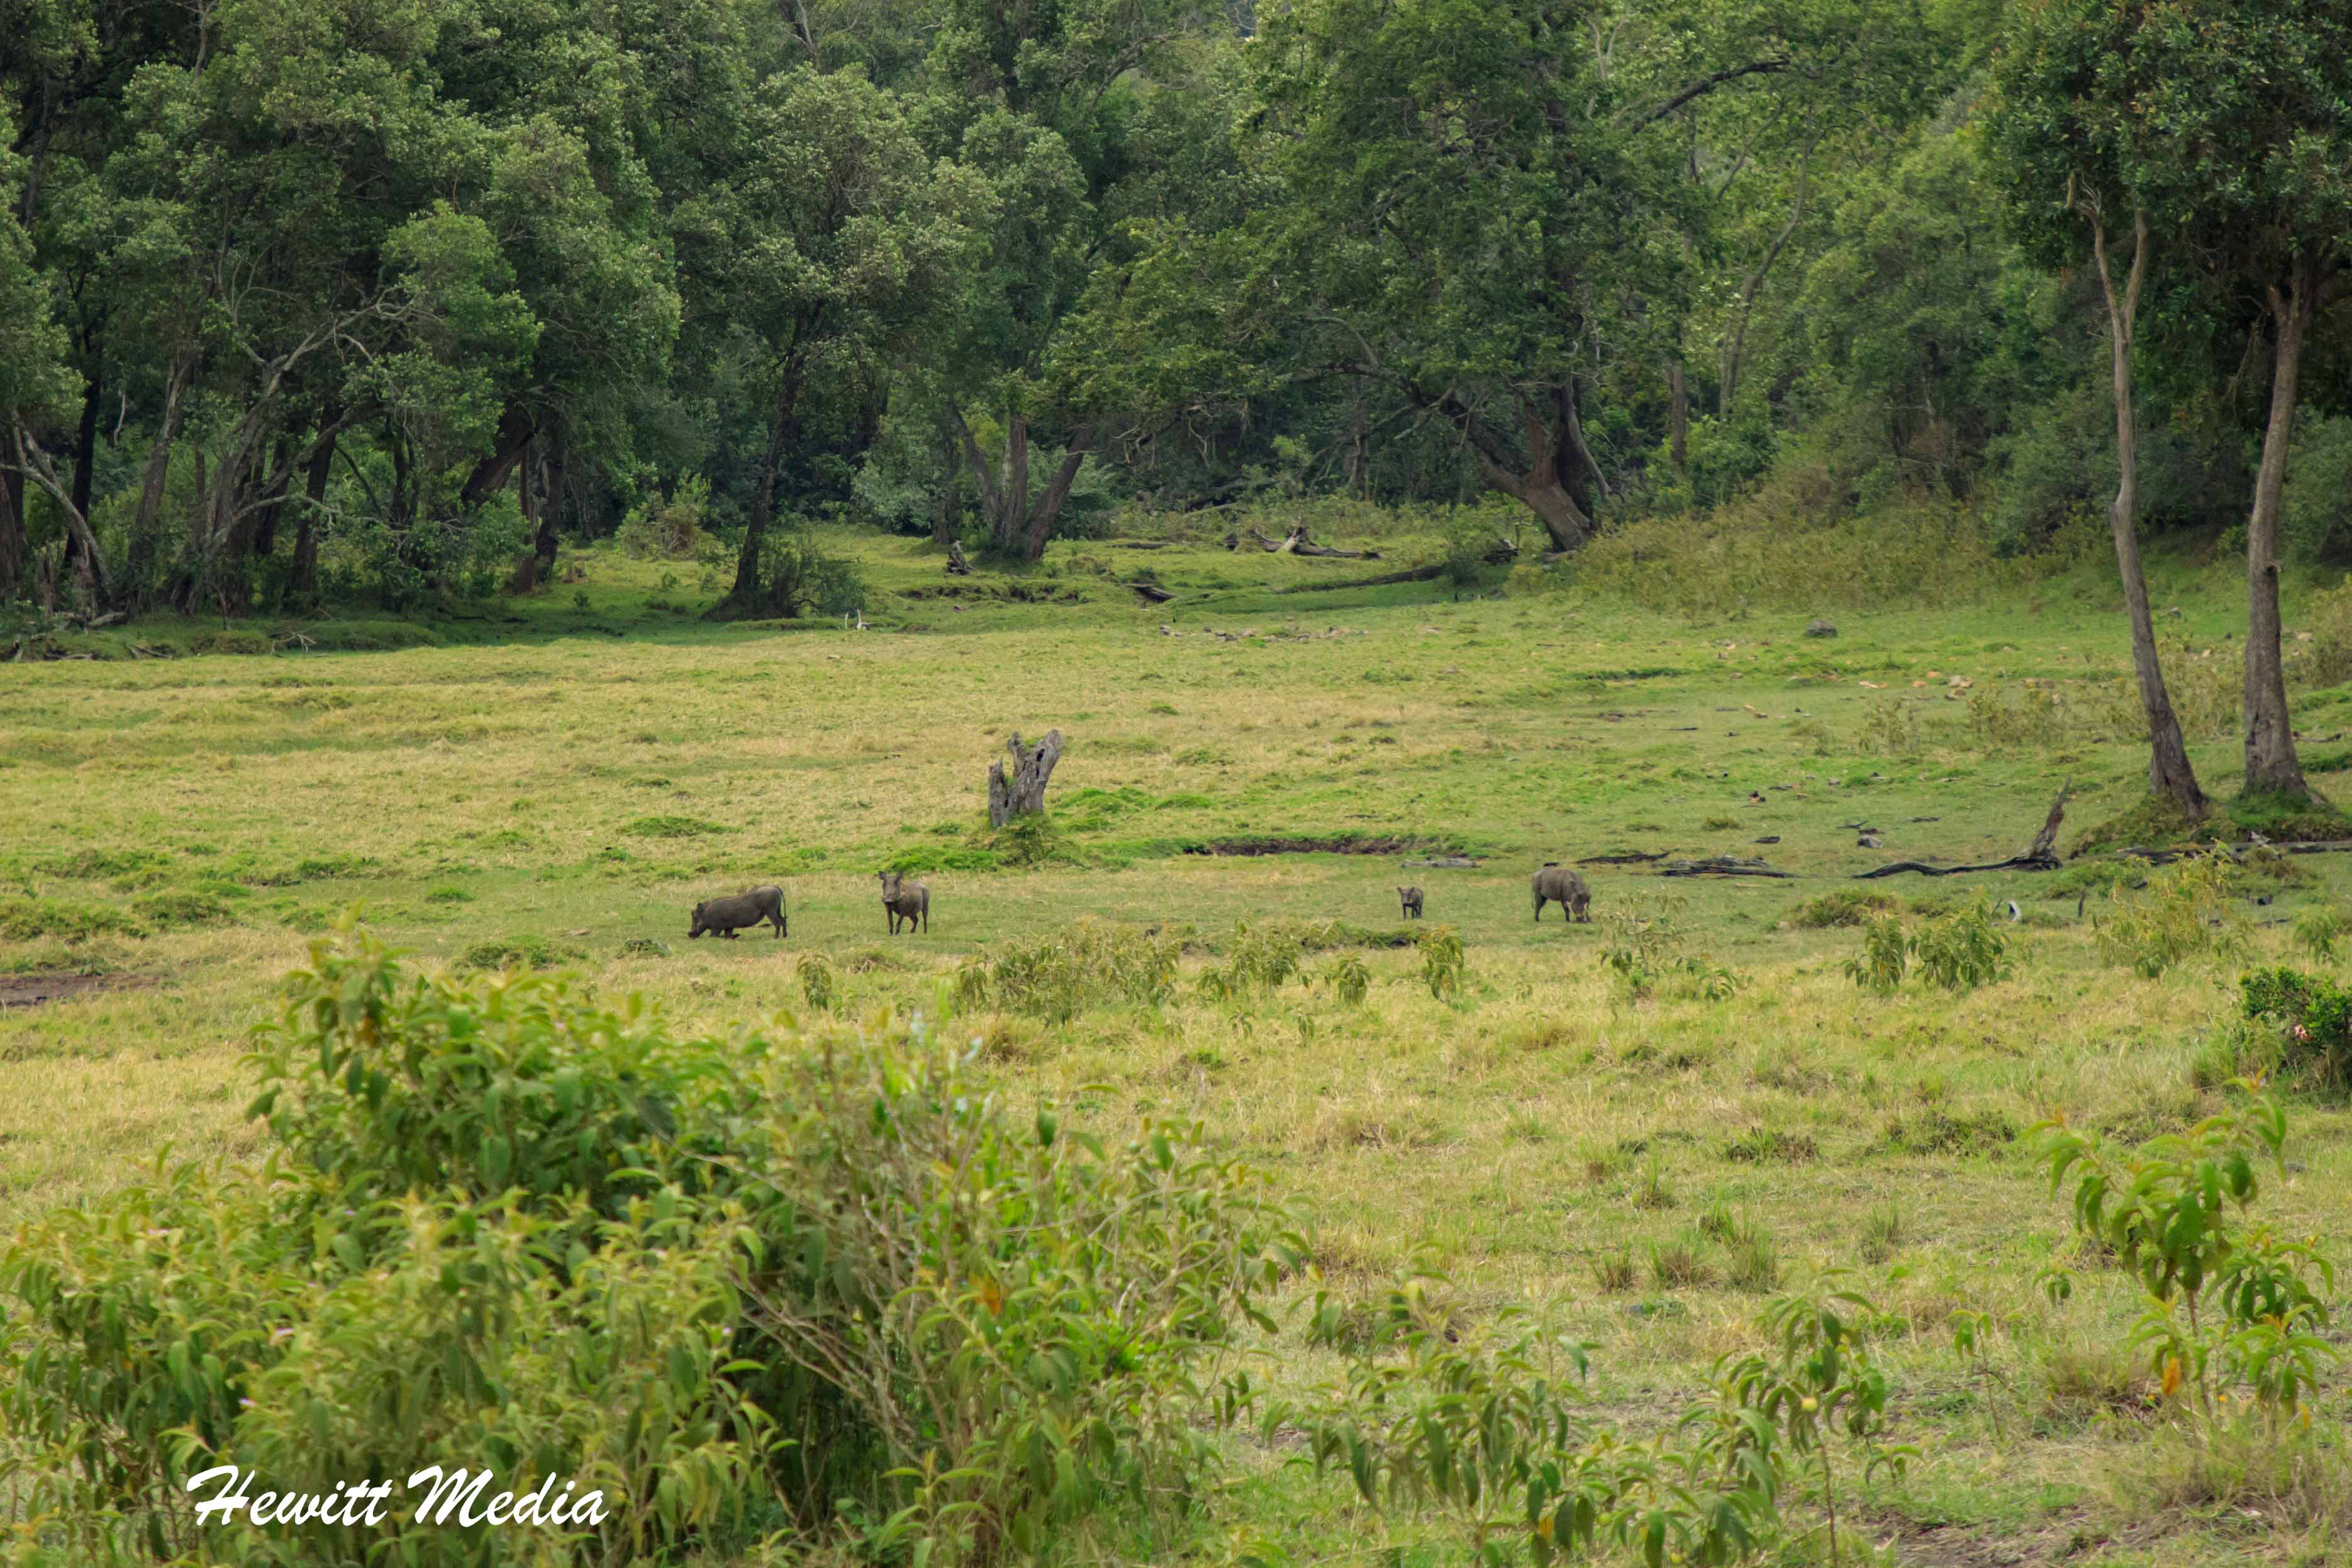 Baboons in the distance while on walking safari